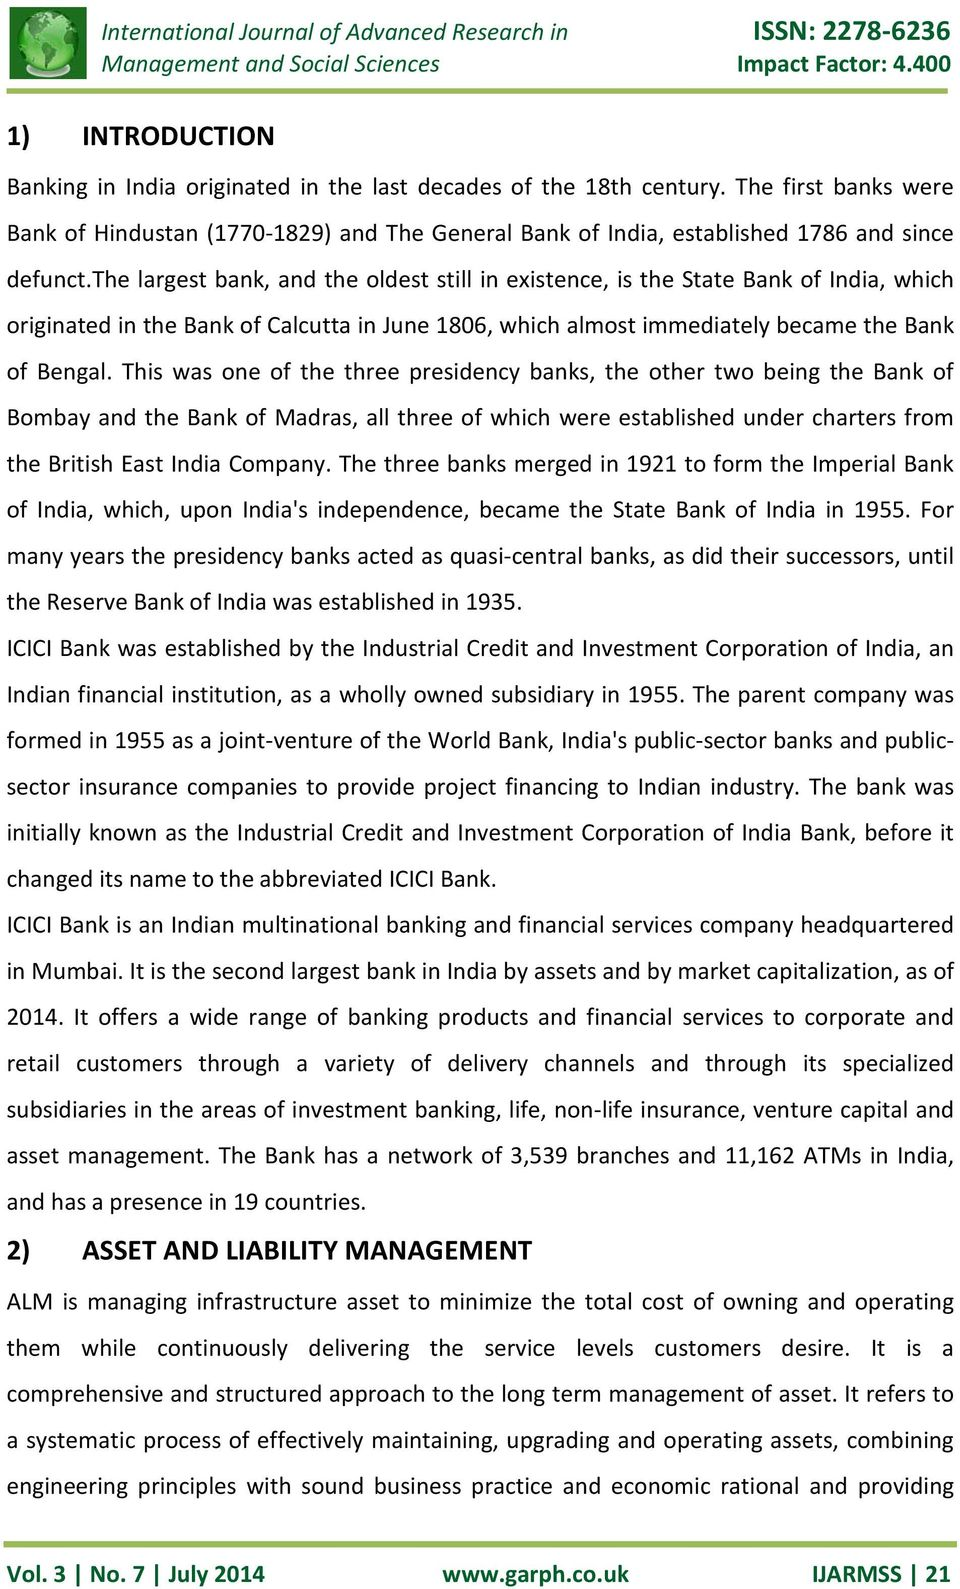 the largest bank, and the oldest still in existence, is the State Bank of India, which originated in the Bank of Calcutta in June 1806, which almost immediately became the Bank of Bengal.